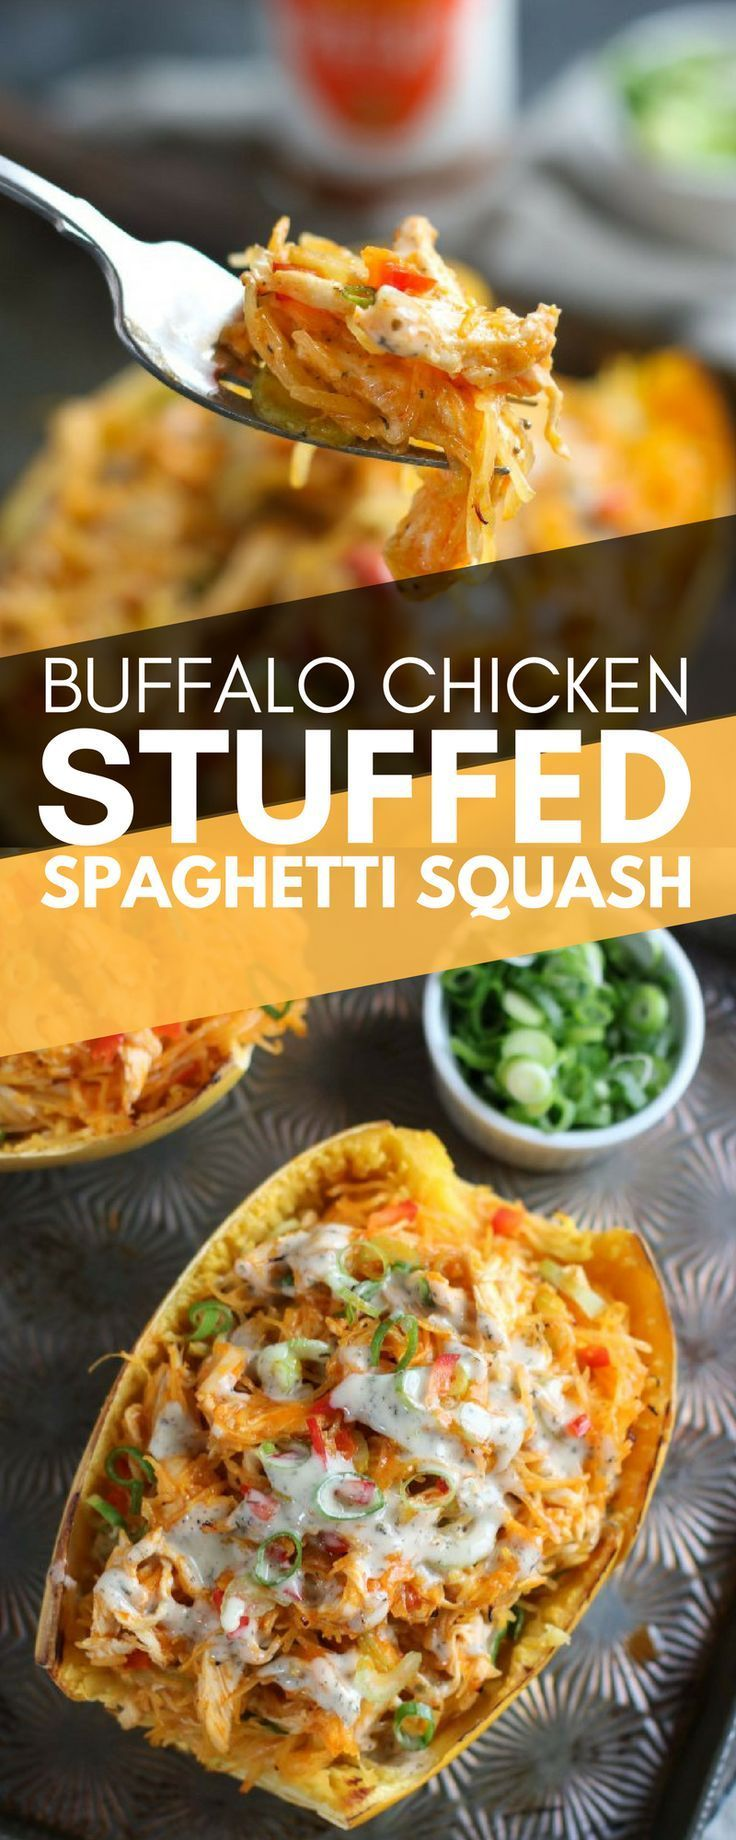 Everyone loves some tasty buffalo chicken, right? What if we told you we had a recipe that was not only tasty, but healthy too? Well, youre in luck! Try this paleo, whole30, grain-free, dairy-free, SUPER delicious recipe for buffalo chicken stuffed spagh